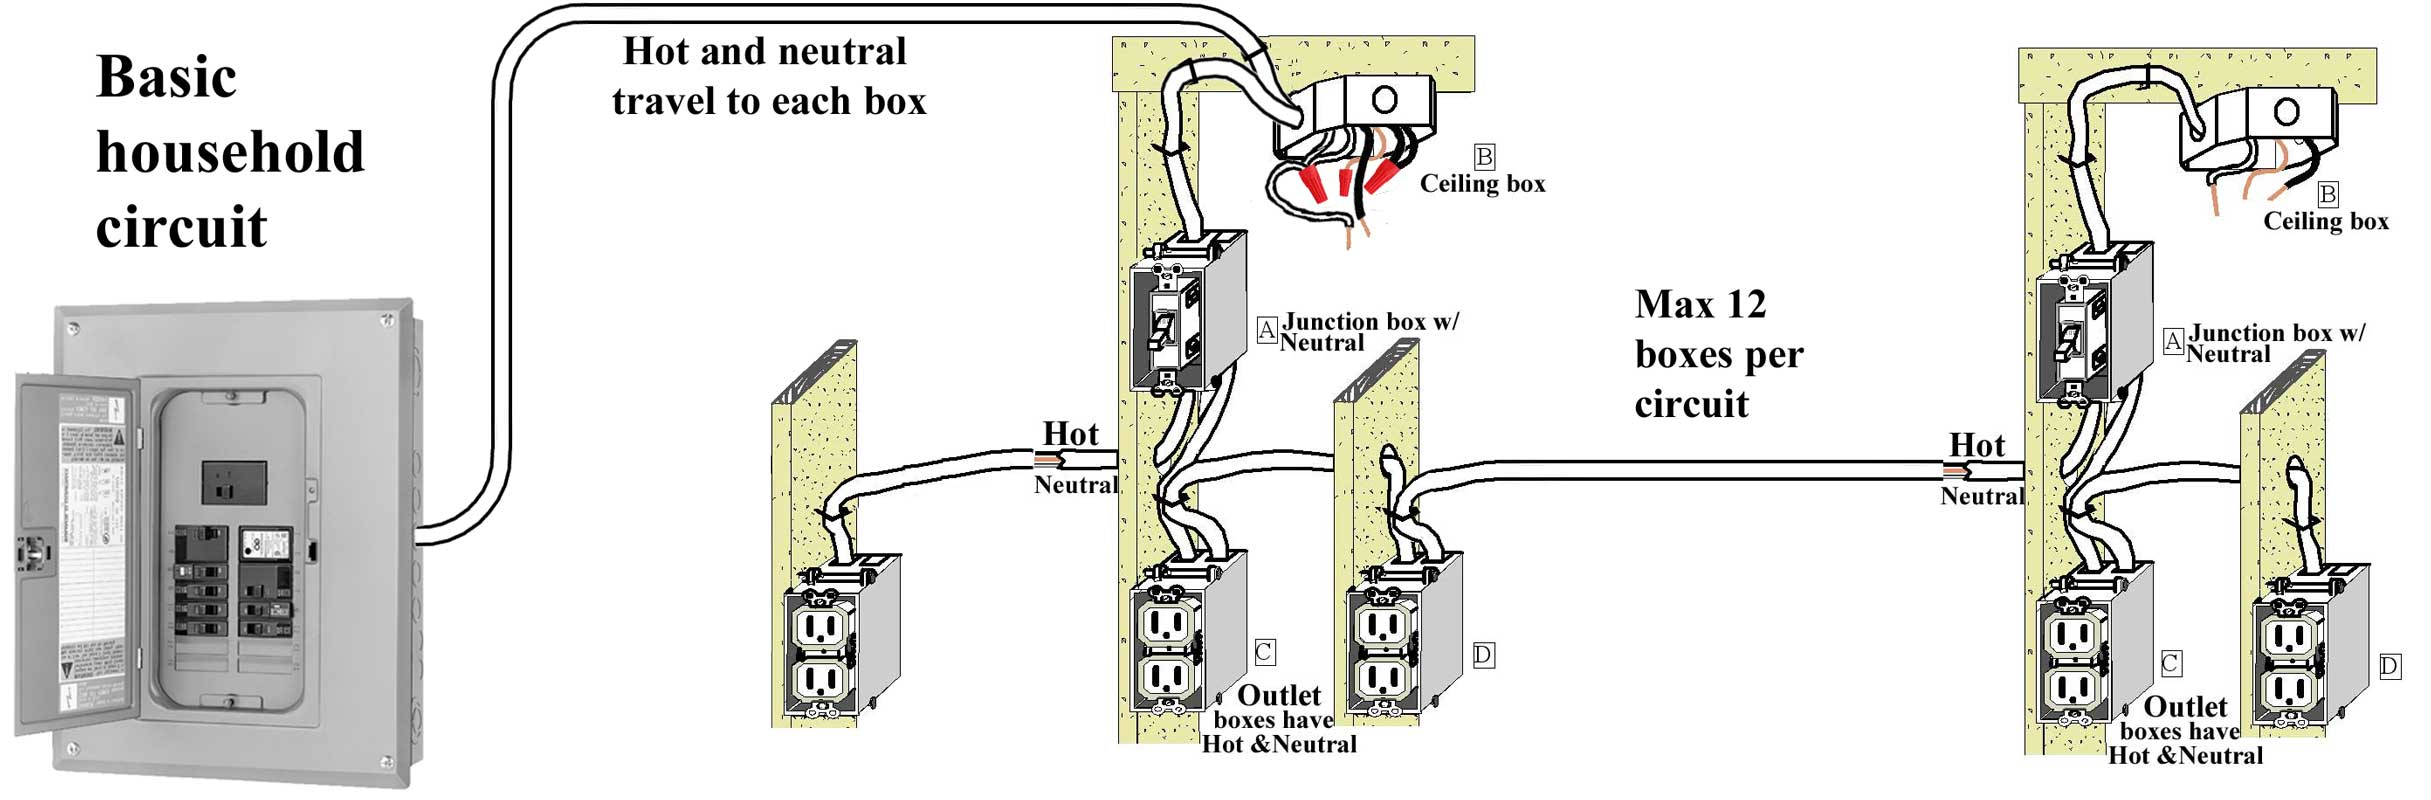 basic household wiring diagrams   basic house wiring diagram    basic house wiring diagram images of house wiring circuit